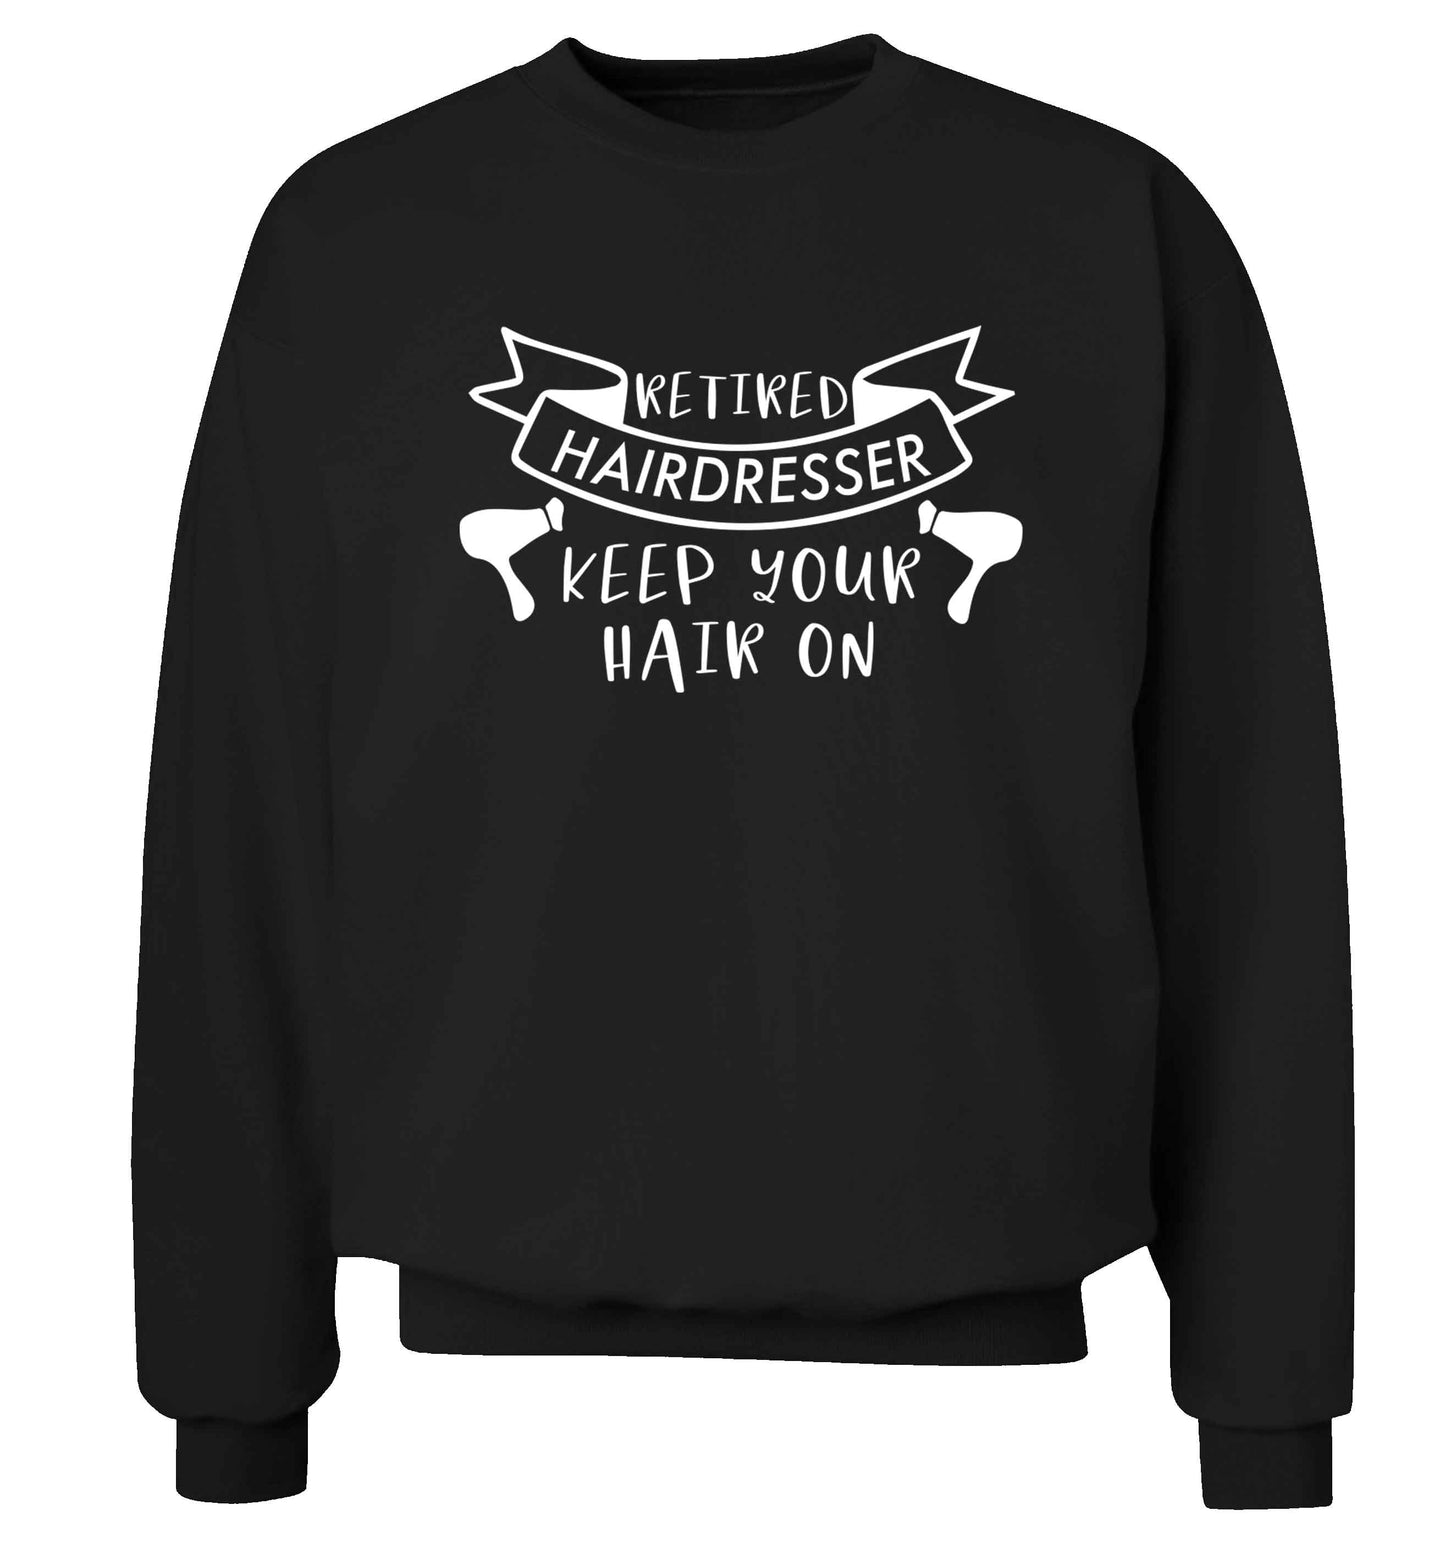 Retired hairdresser keep your hair on Adult's unisex black Sweater 2XL